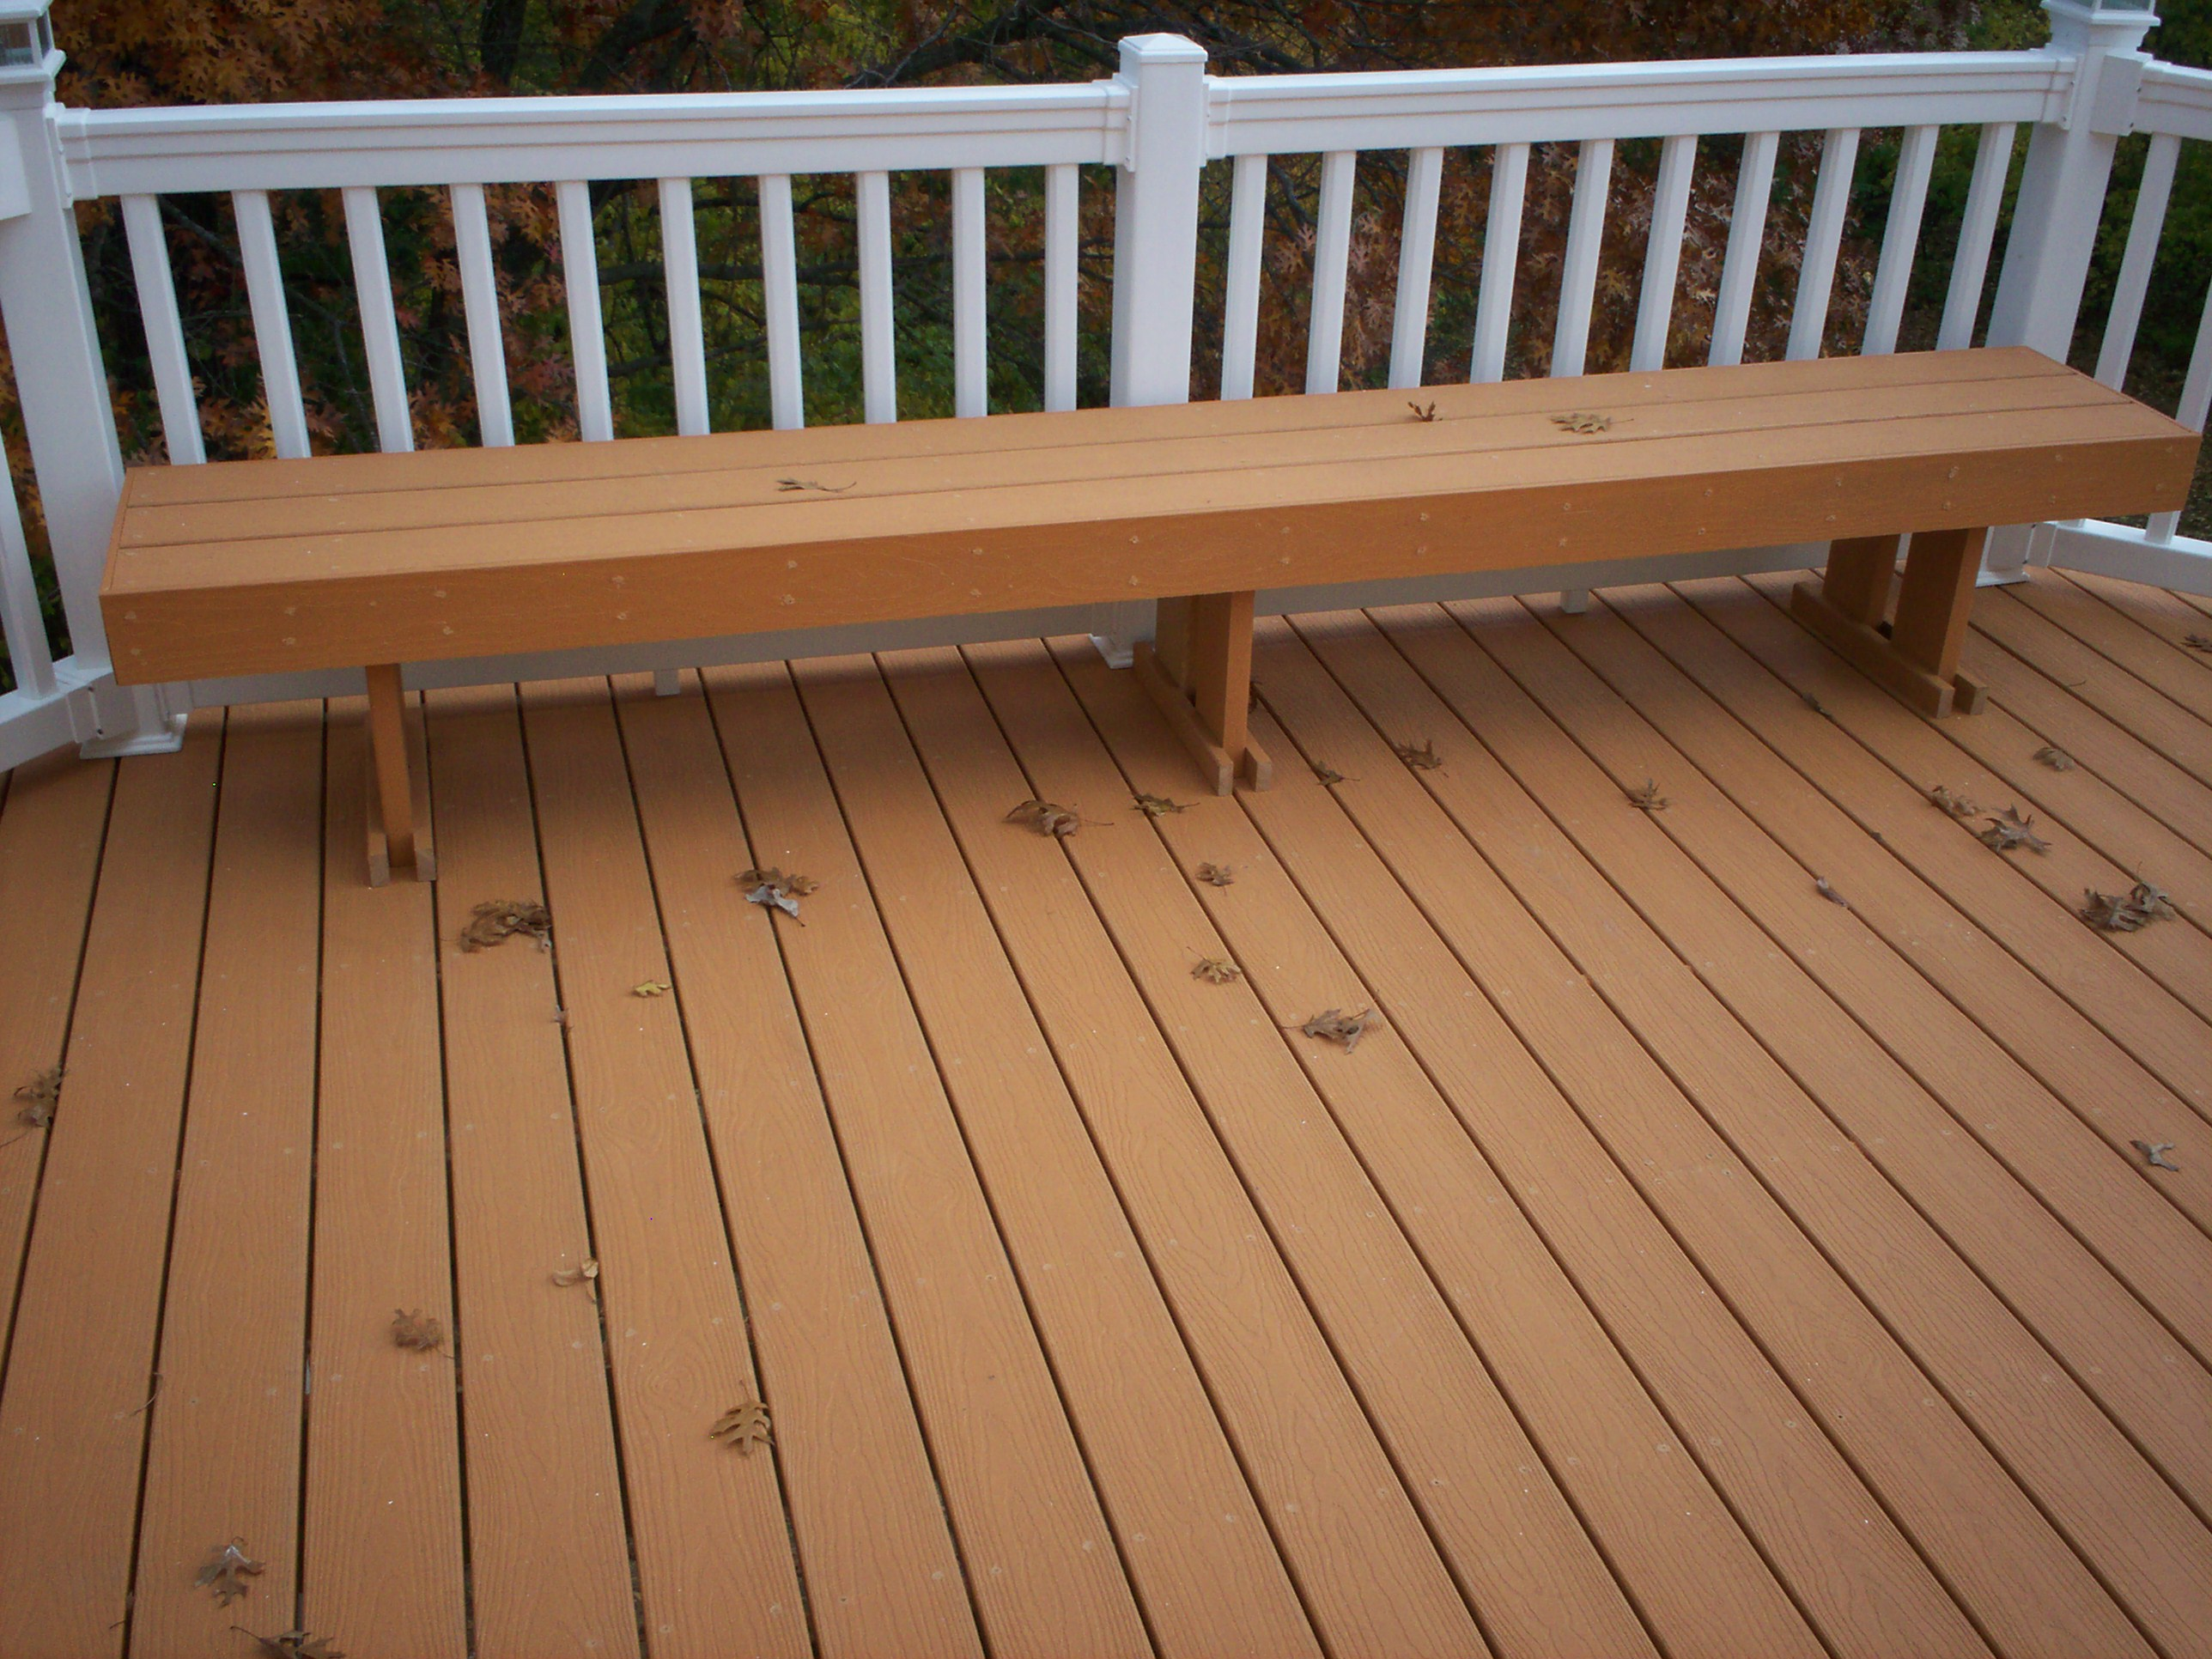 Composite decking vinyl railings with lighting and bench for Vinyl decking material